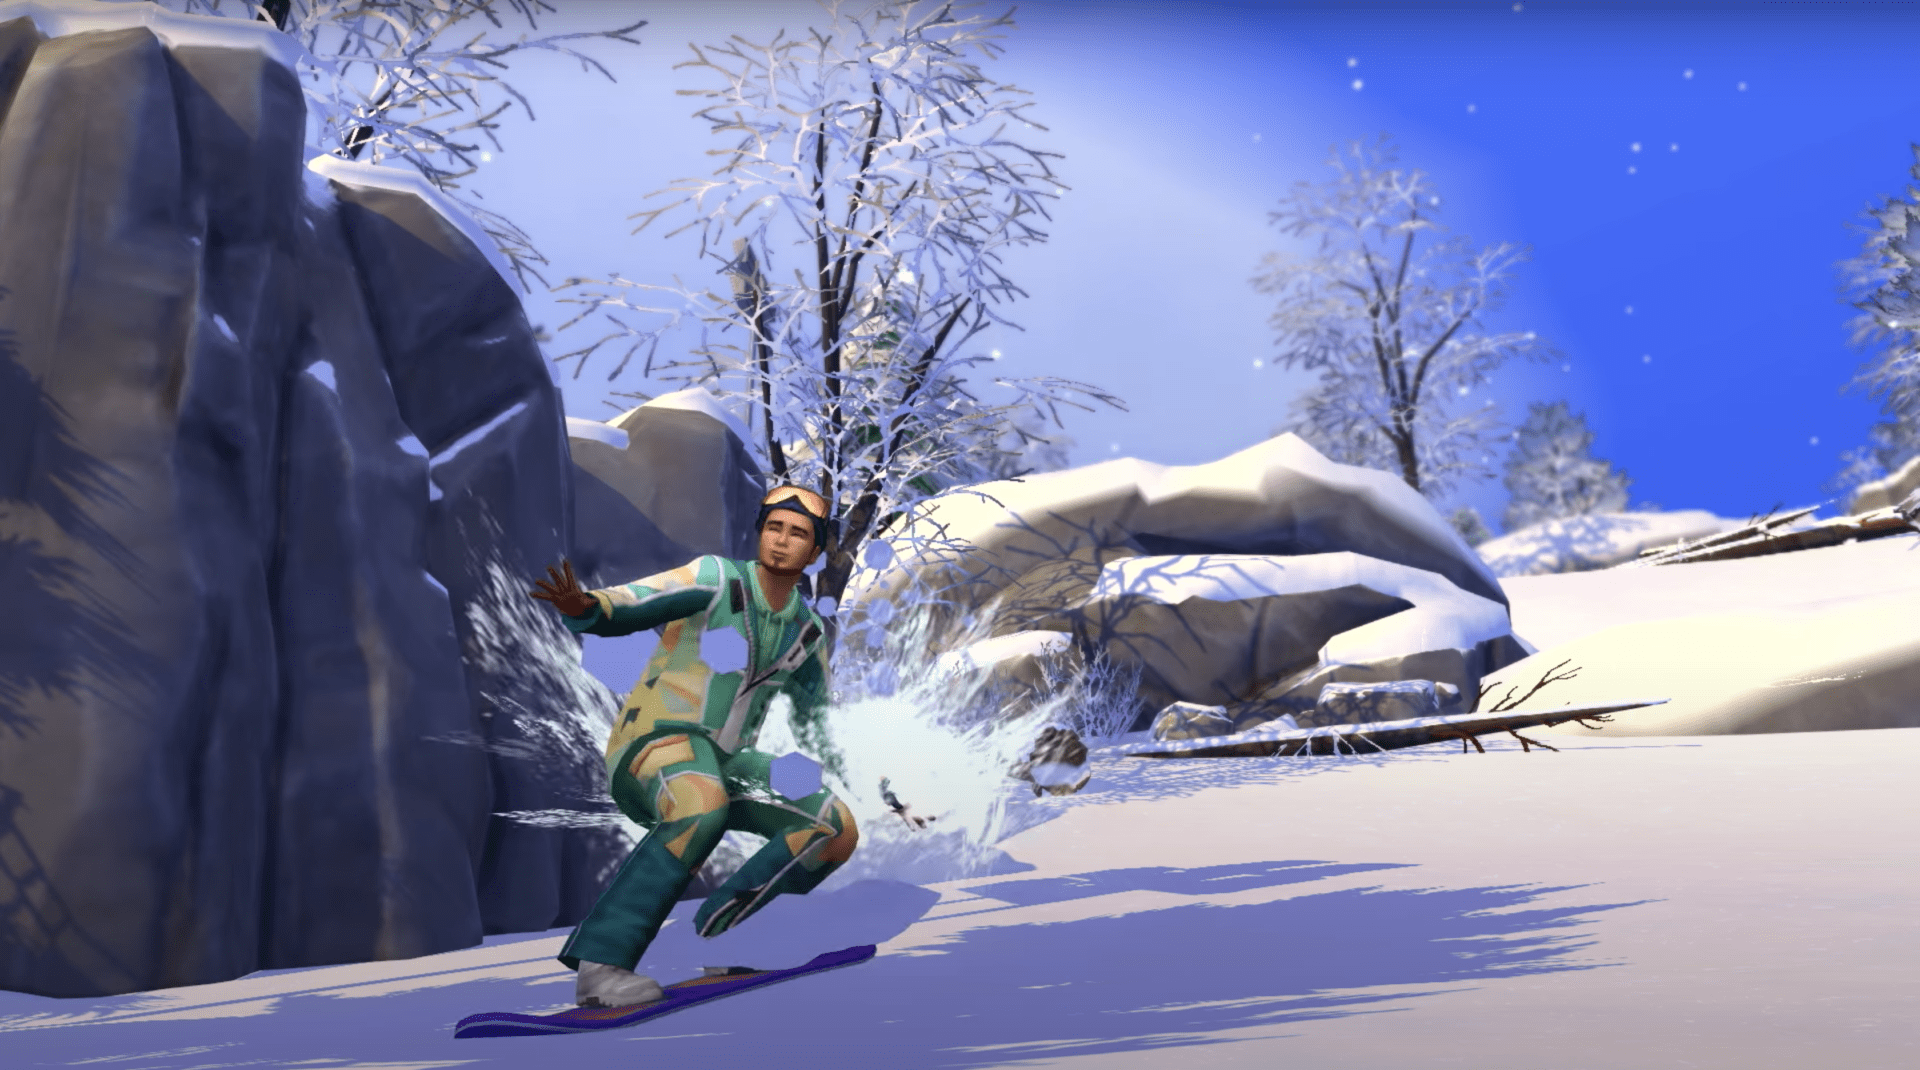 The Sims 4 Snowy Escape: New Gameplay Trailer Launched 1